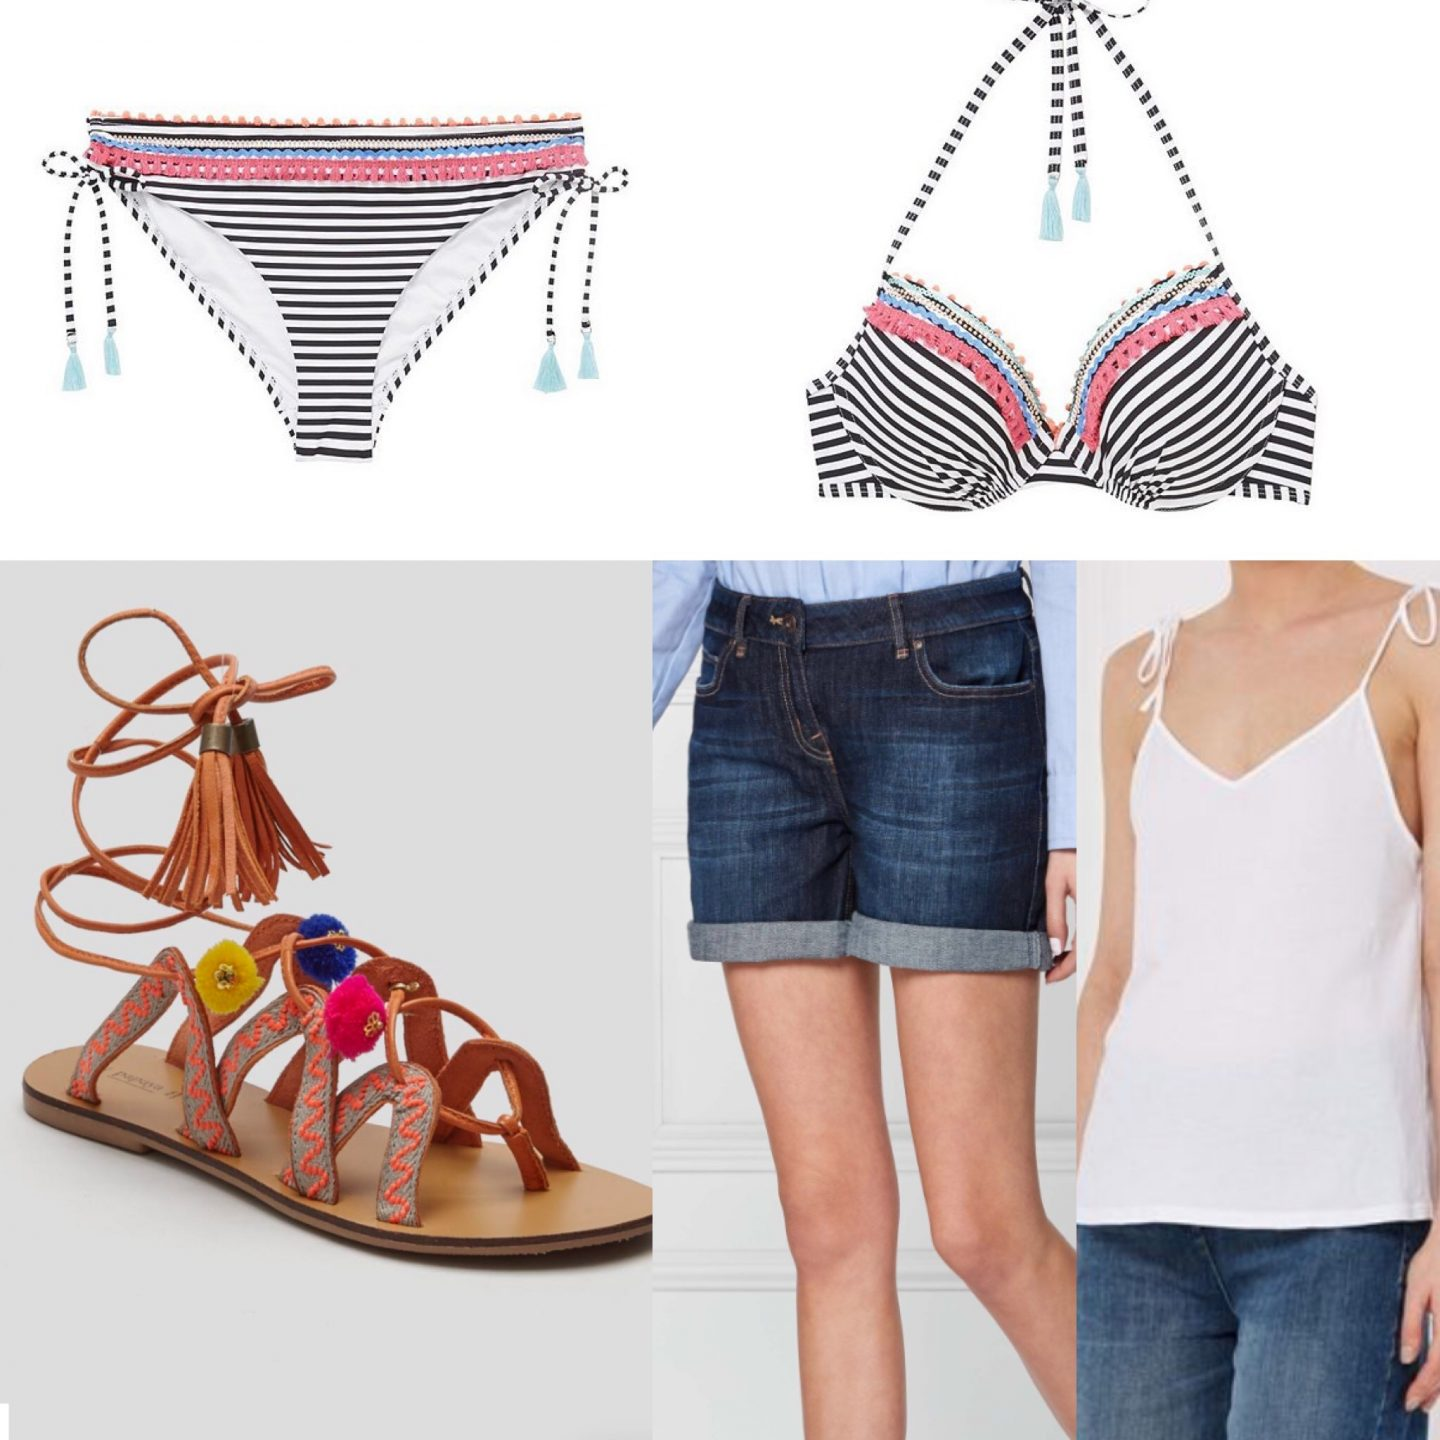 Mummy Style: UK Holiday Capsule Wardrobe